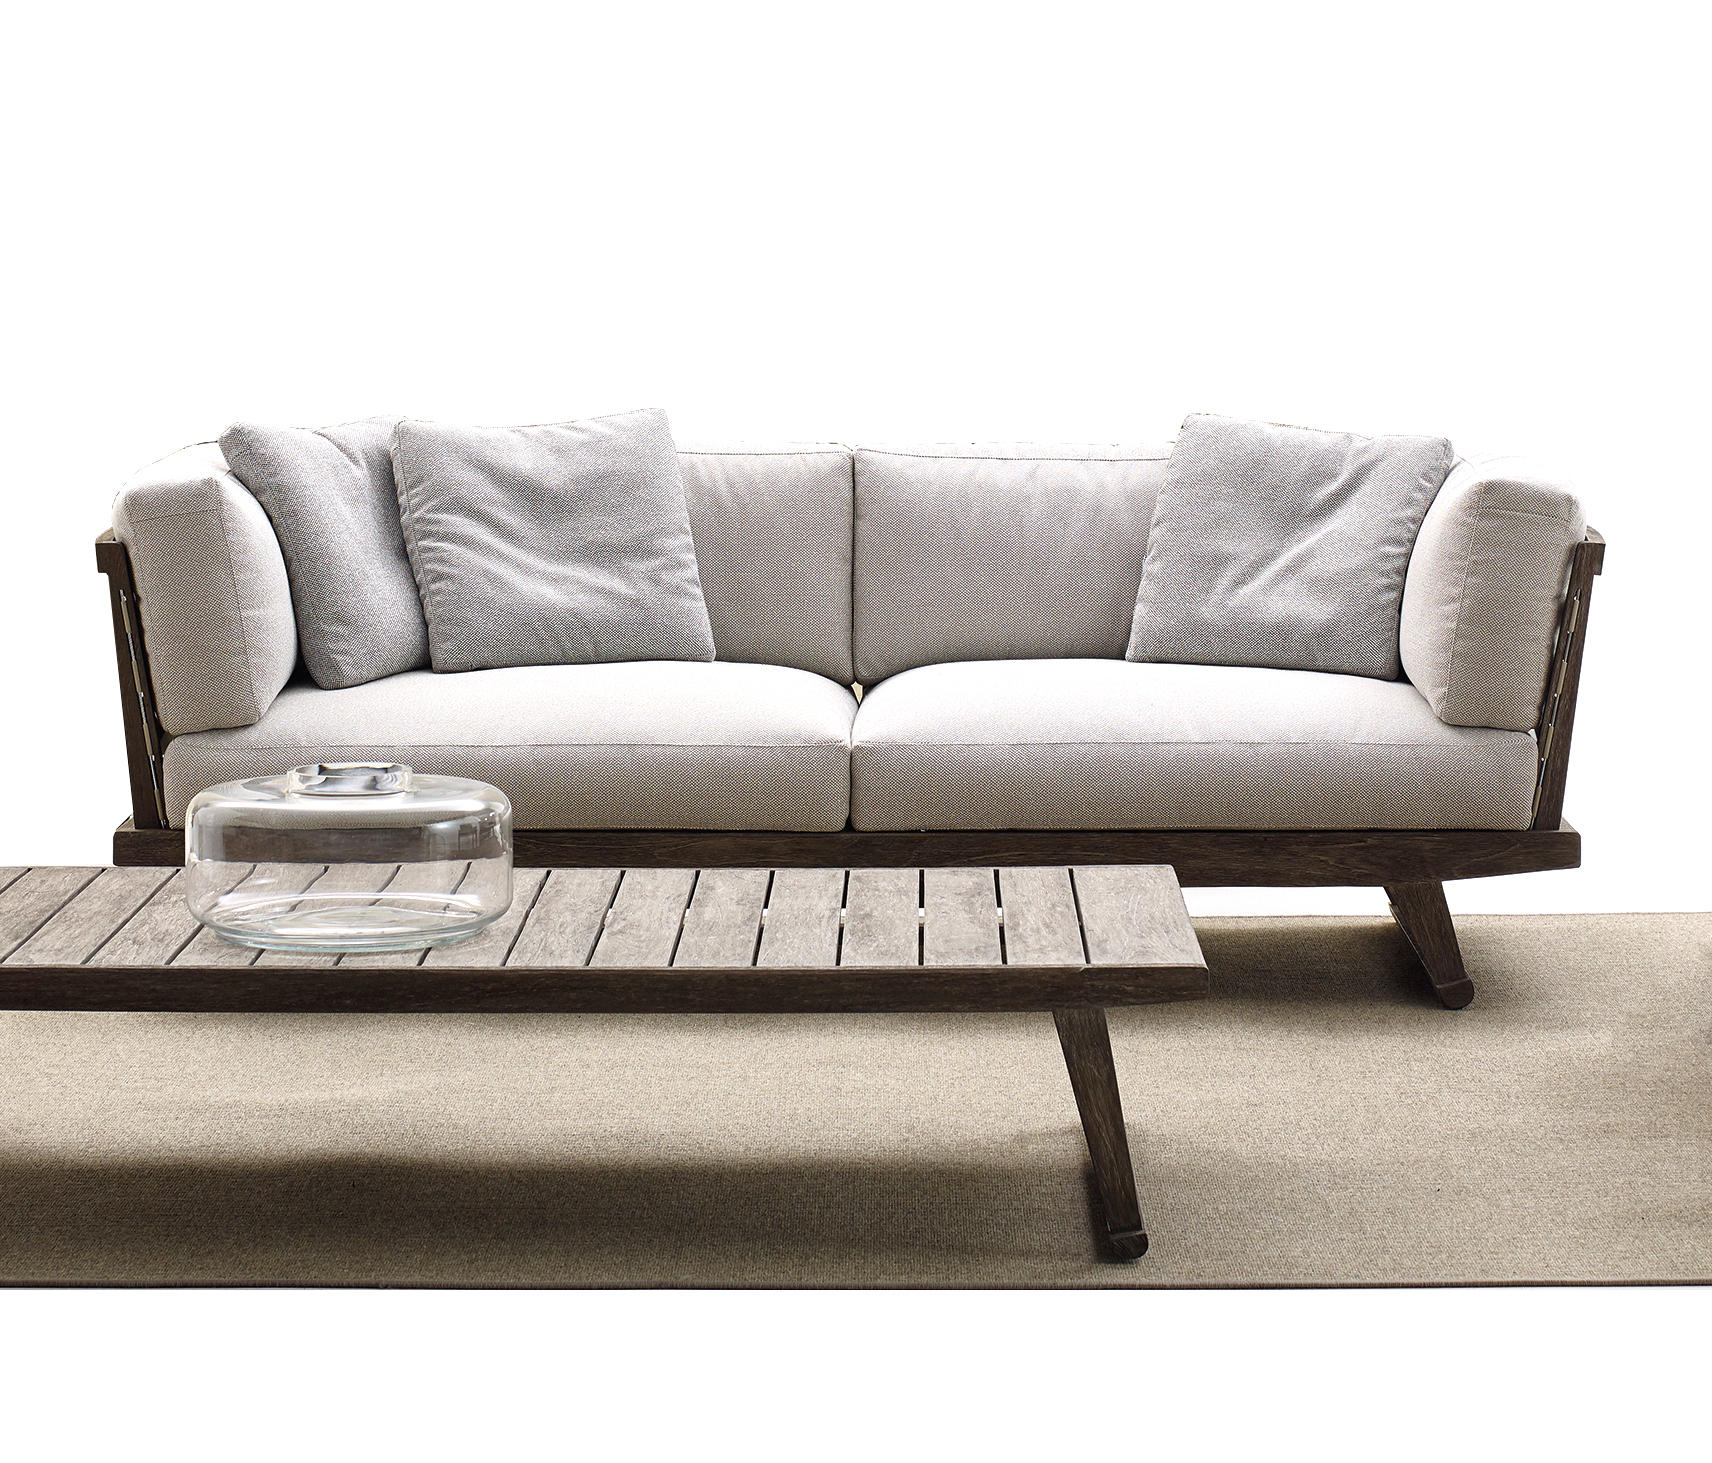 Bettsofa Xenia Sofa Italia American Signature Sleeper Leather Maintenance